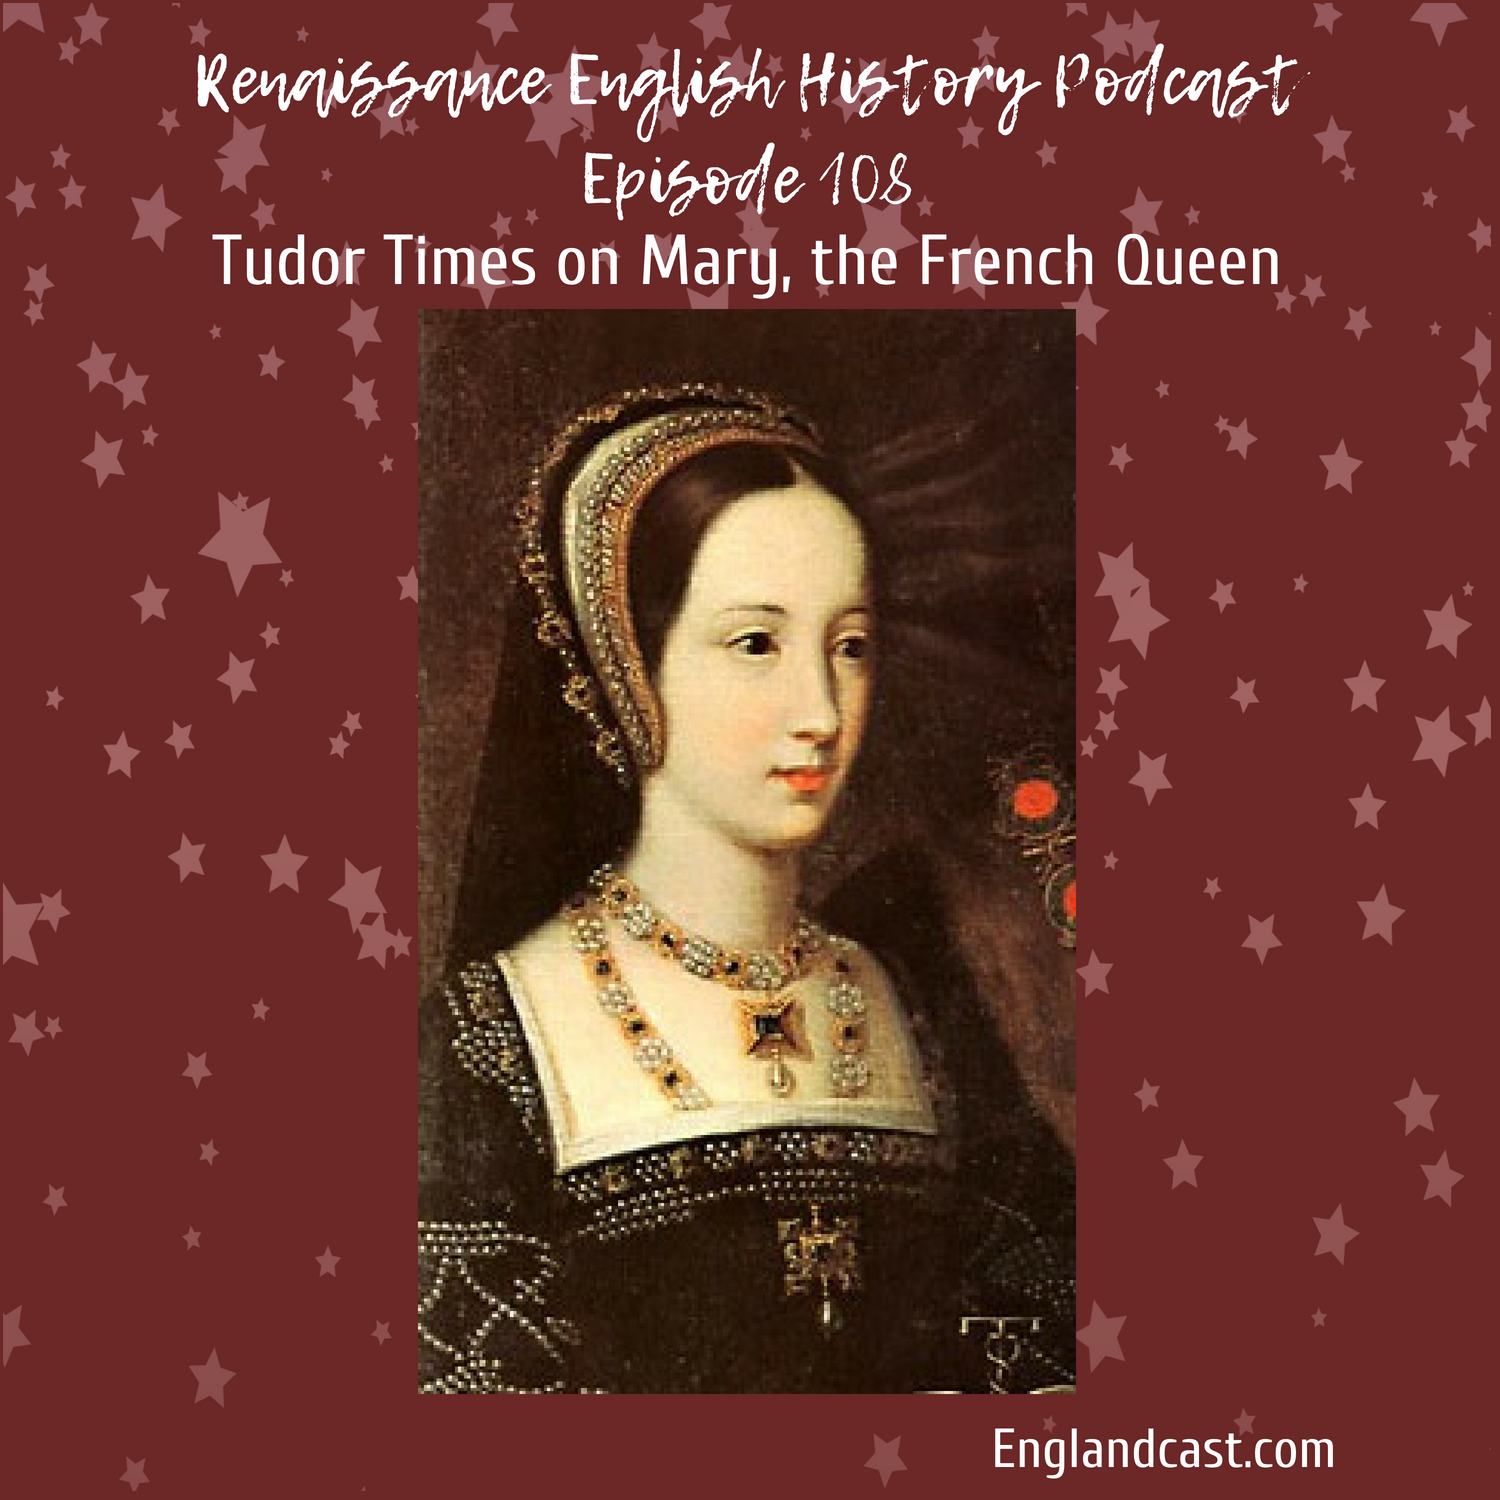 Episode 108: Tudor Times on Mary Tudor, the French Queen